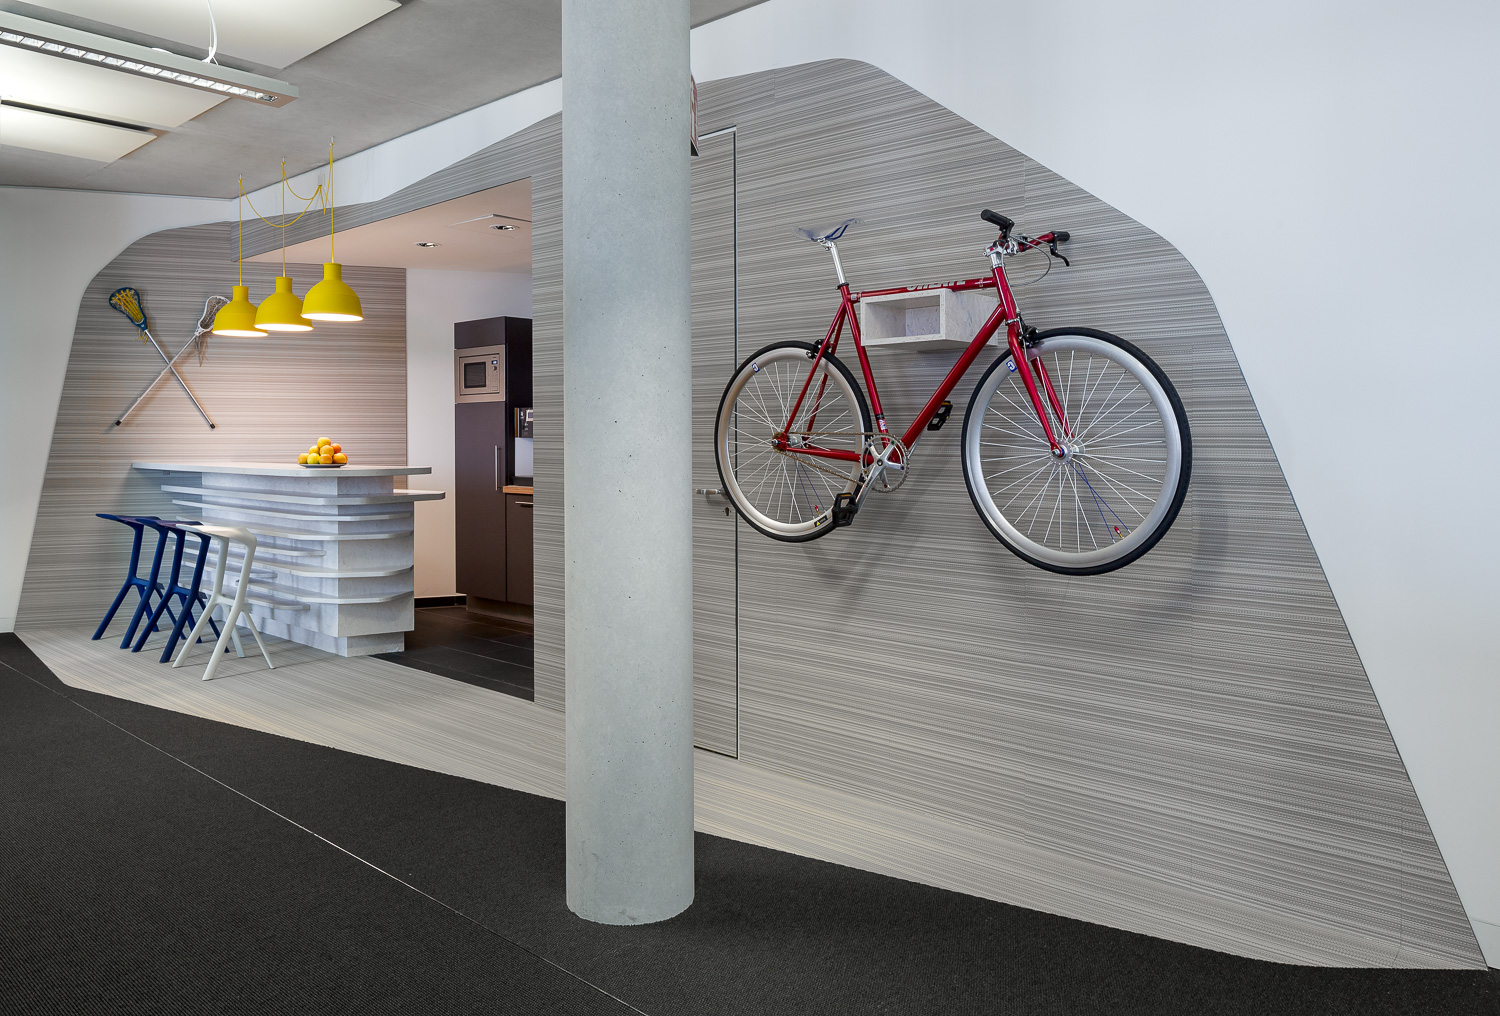 View into the office: Seating possibilities and bicycle on the wall